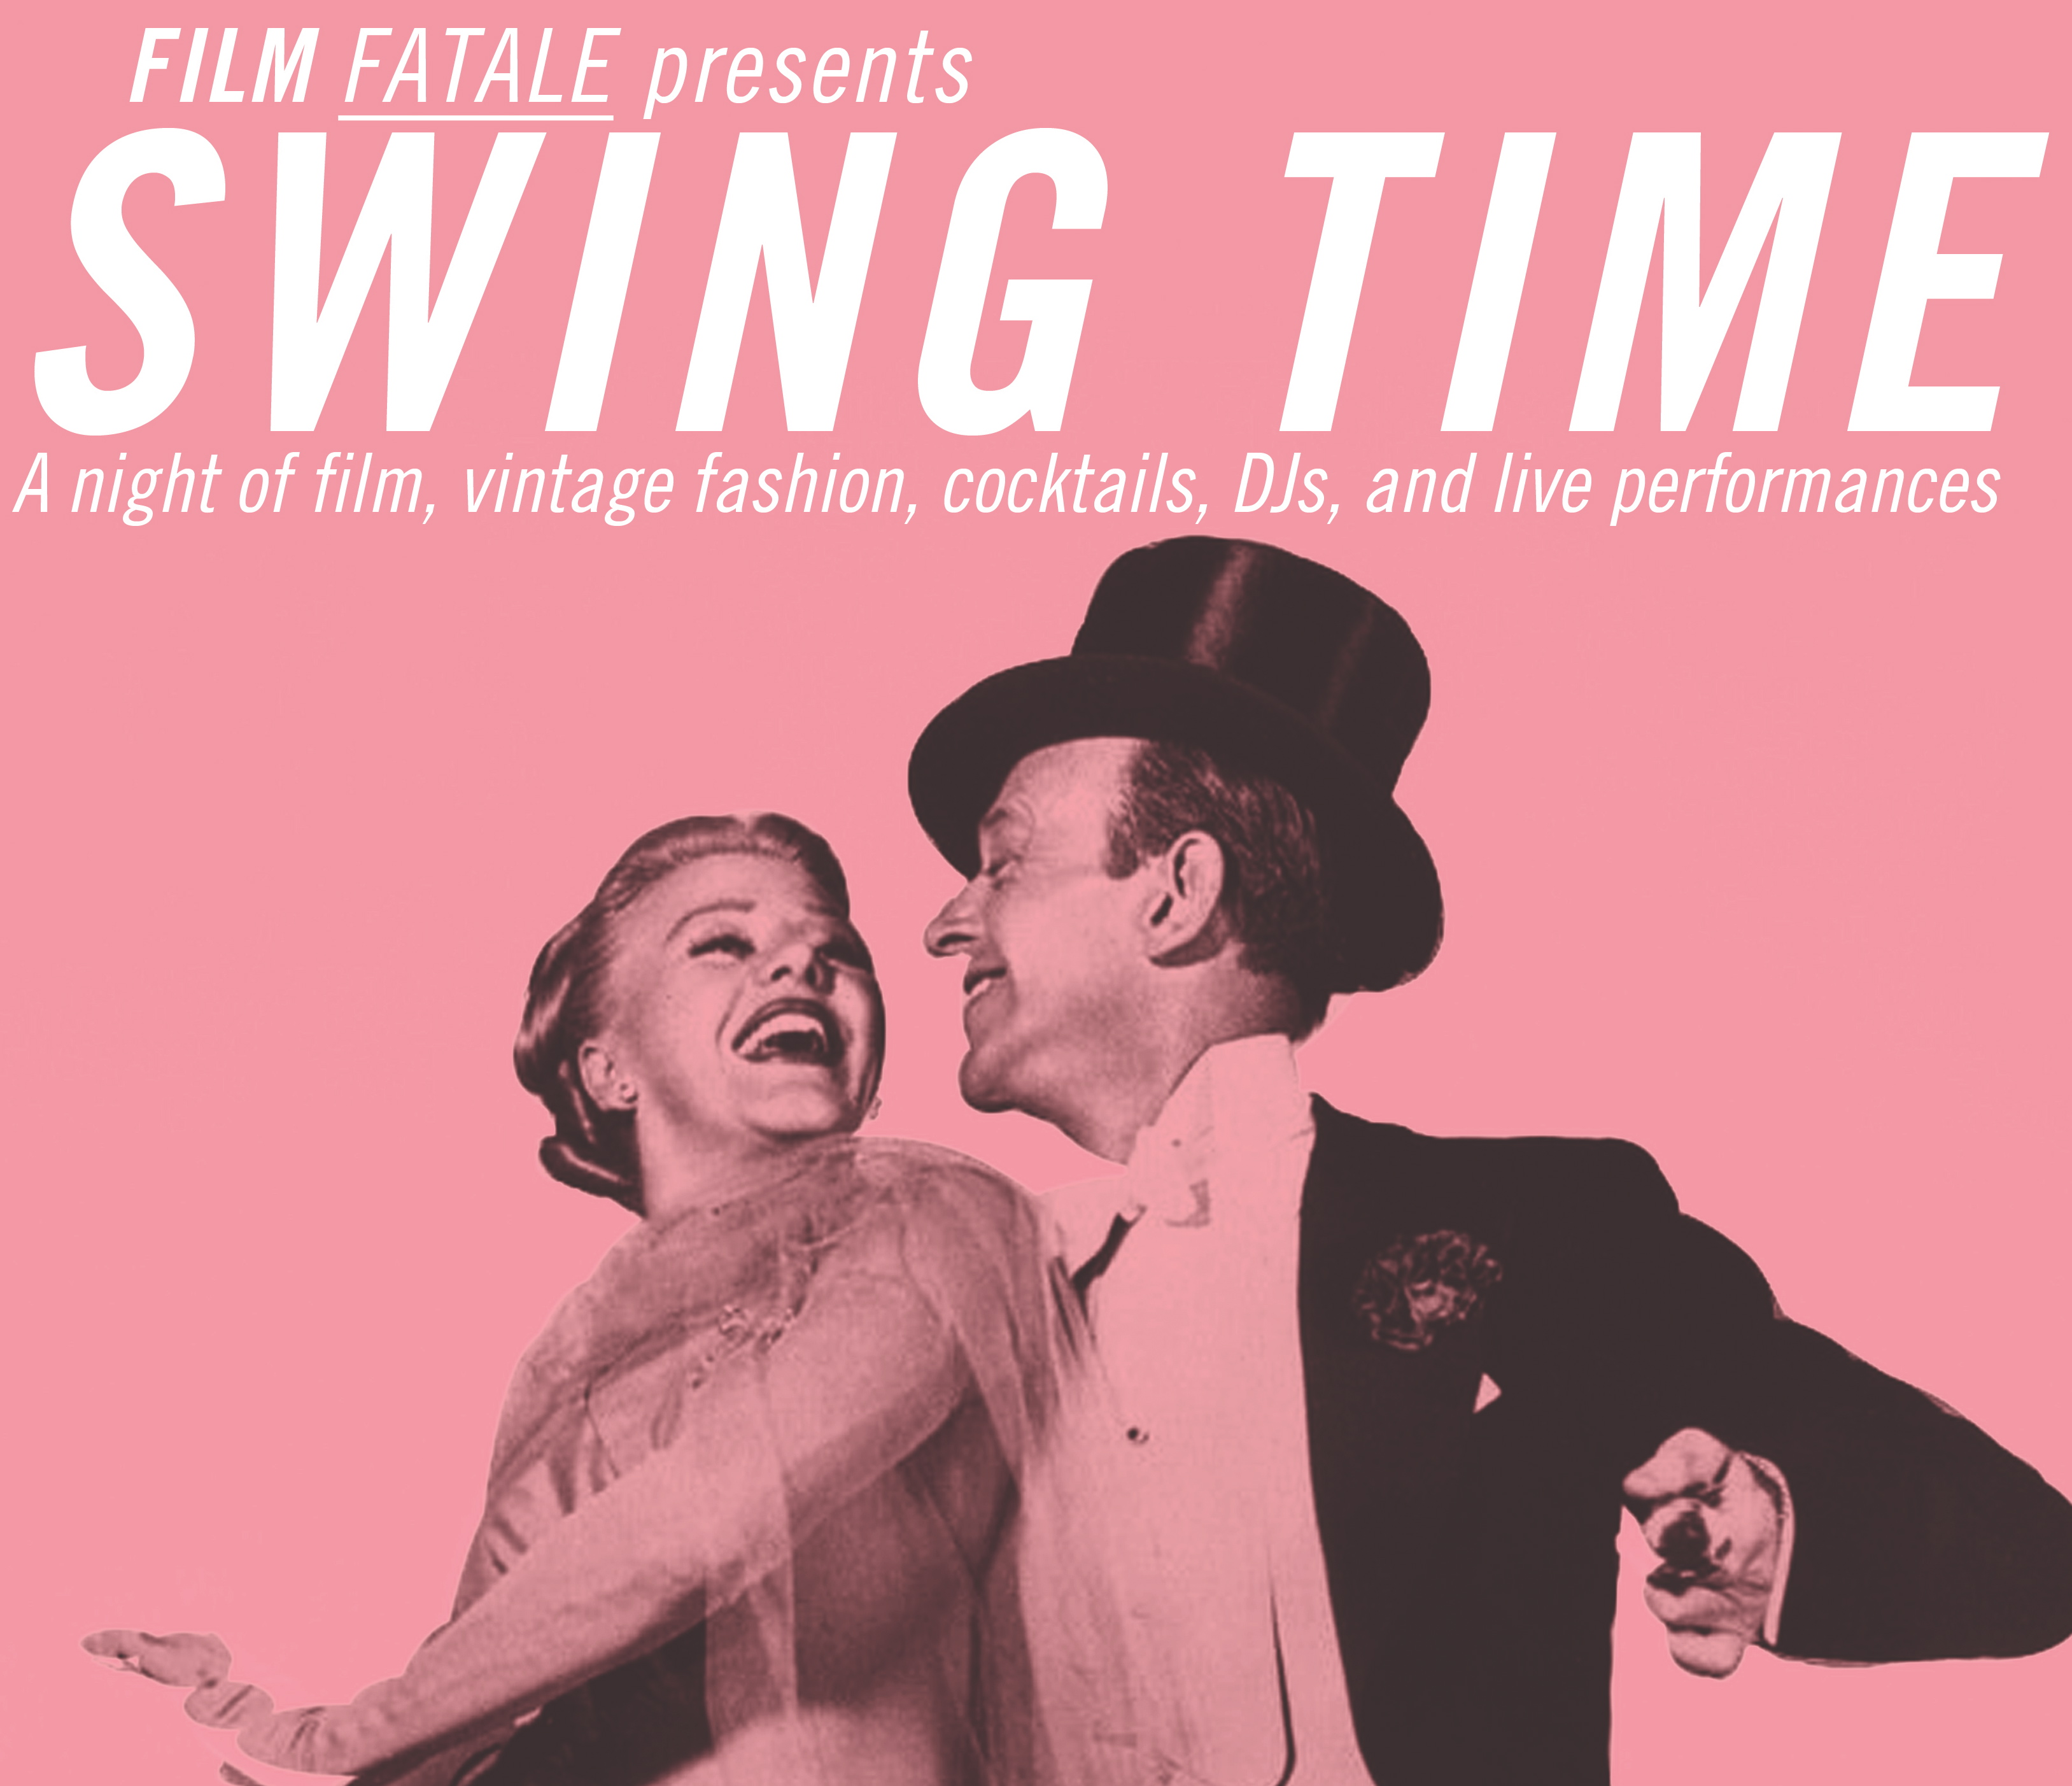 Film Fatale presents Swing Time